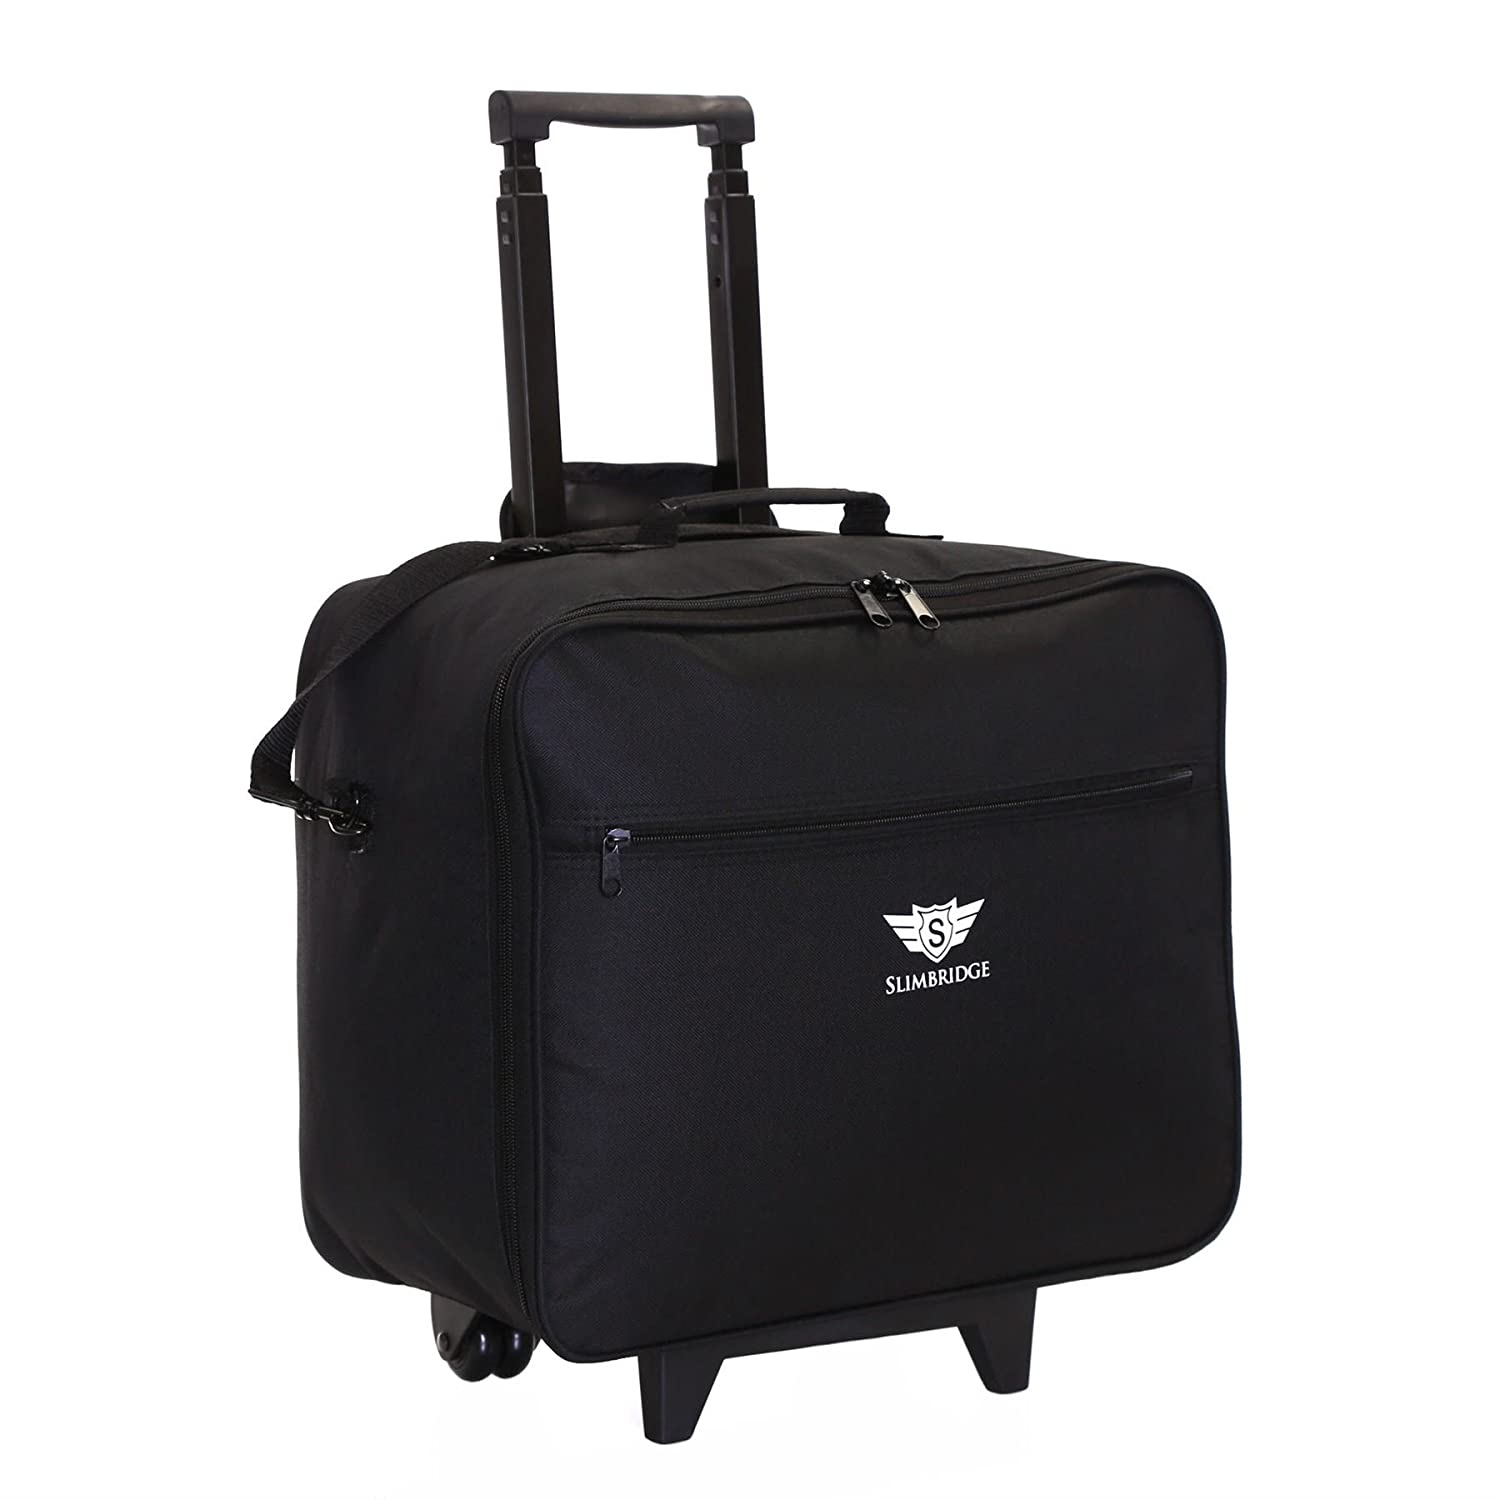 Slimbridge Kalmar Lightweight Business Wheeled Rolling Laptop Trolley Hand Luggage Cabin Bag Case